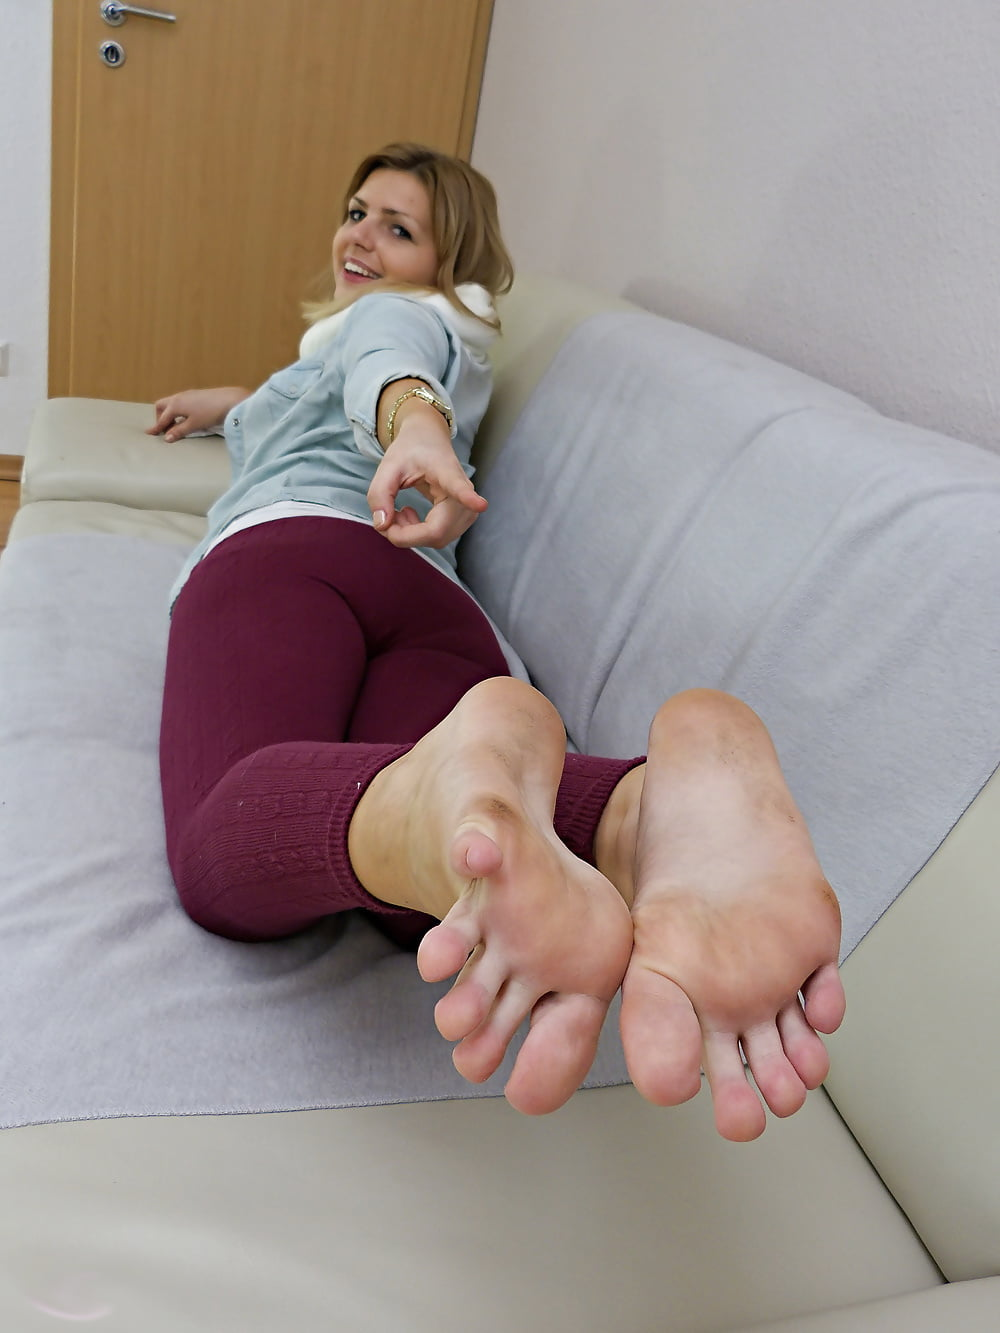 bend-up-and-smell-my-anal-vapor-stw-pantyhose-spank